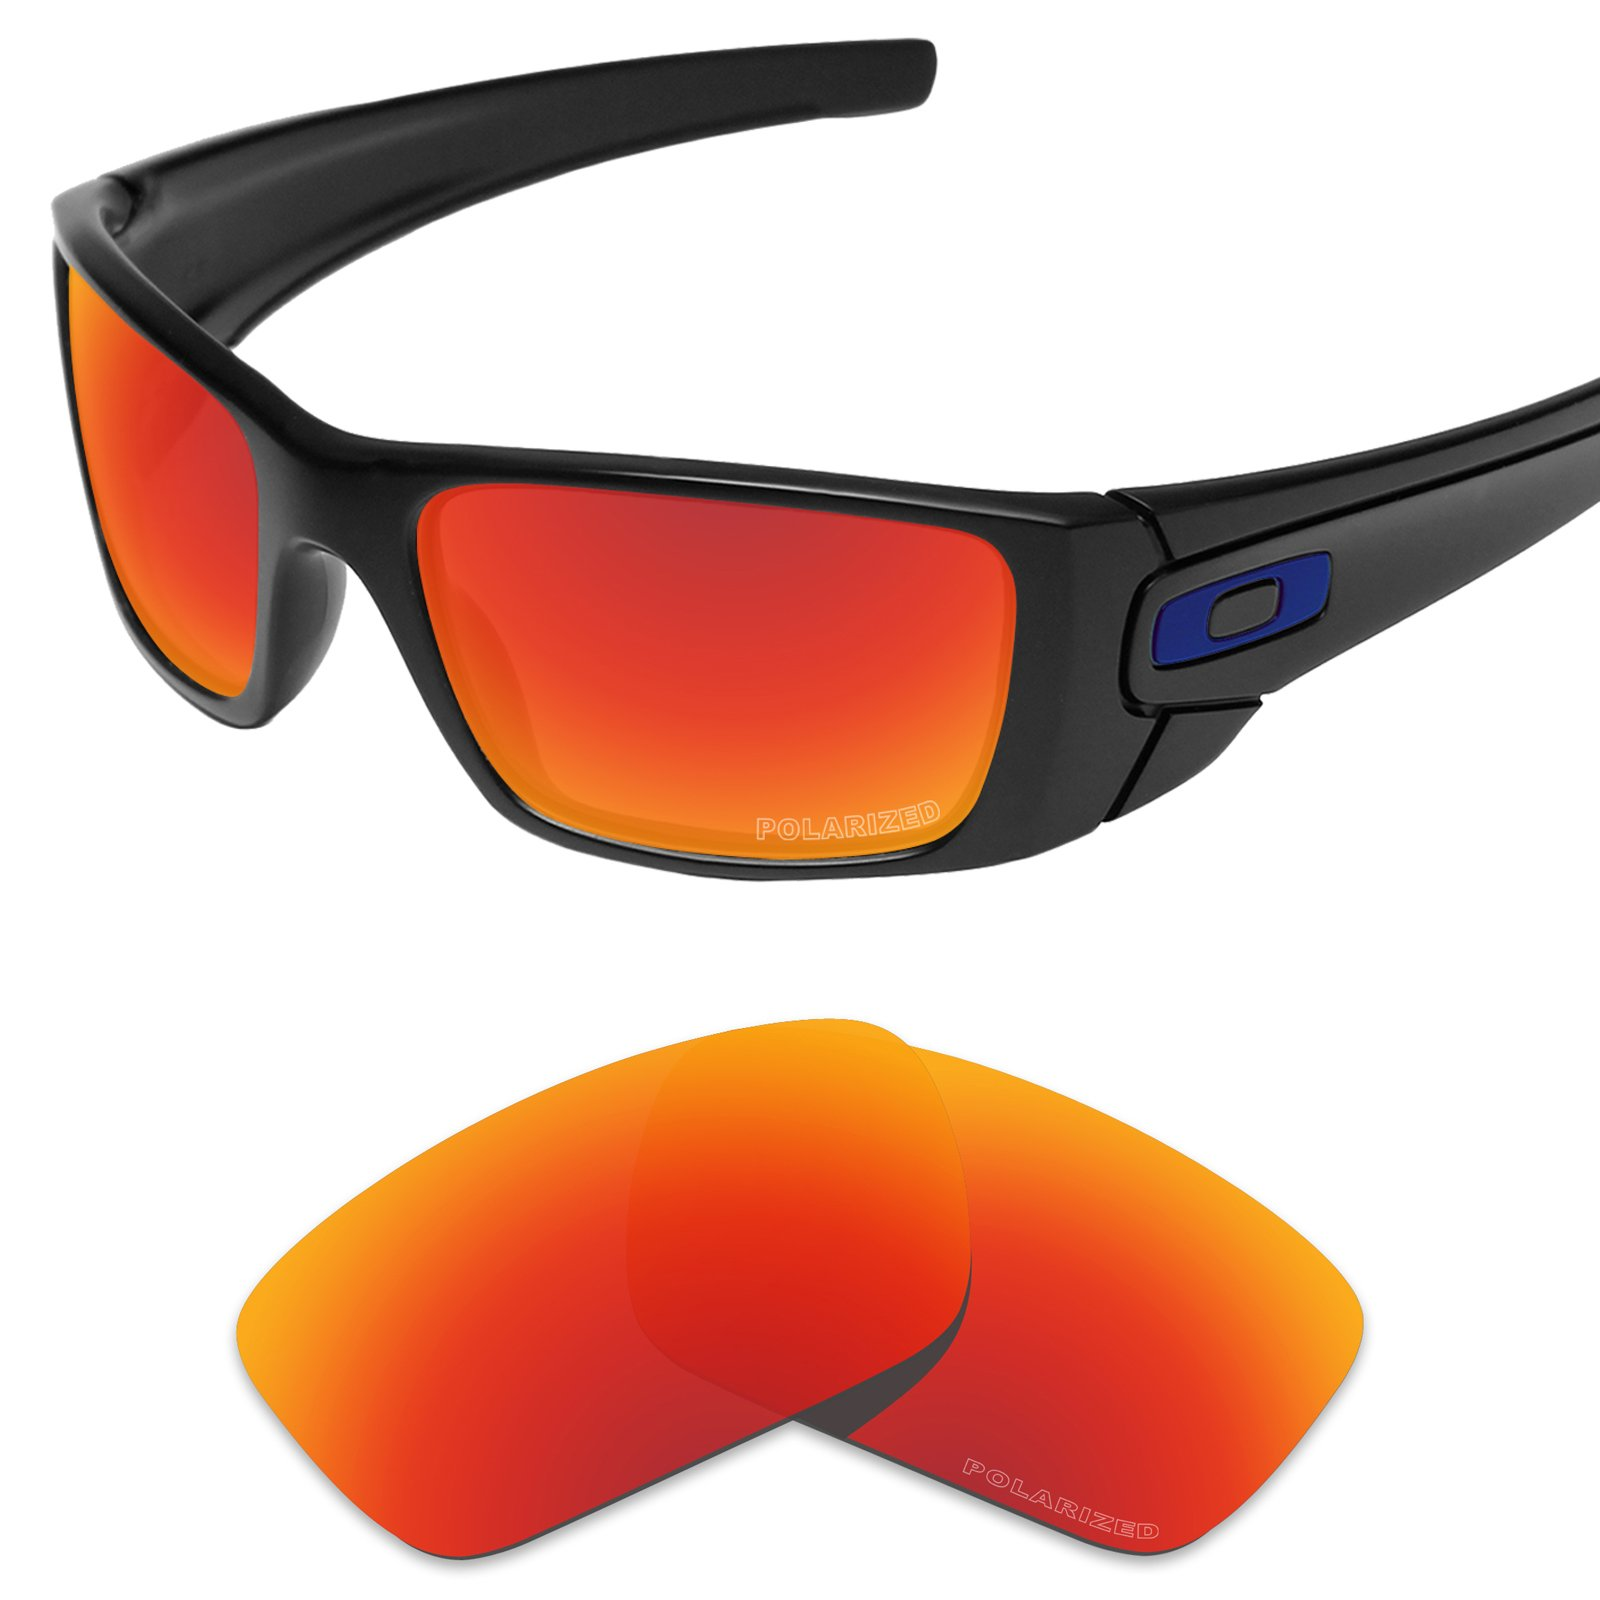 Tintart Performance Replacement Lenses for Oakley Fuel Cell Sunglass Polarized Etched-Fire Red by Tintart